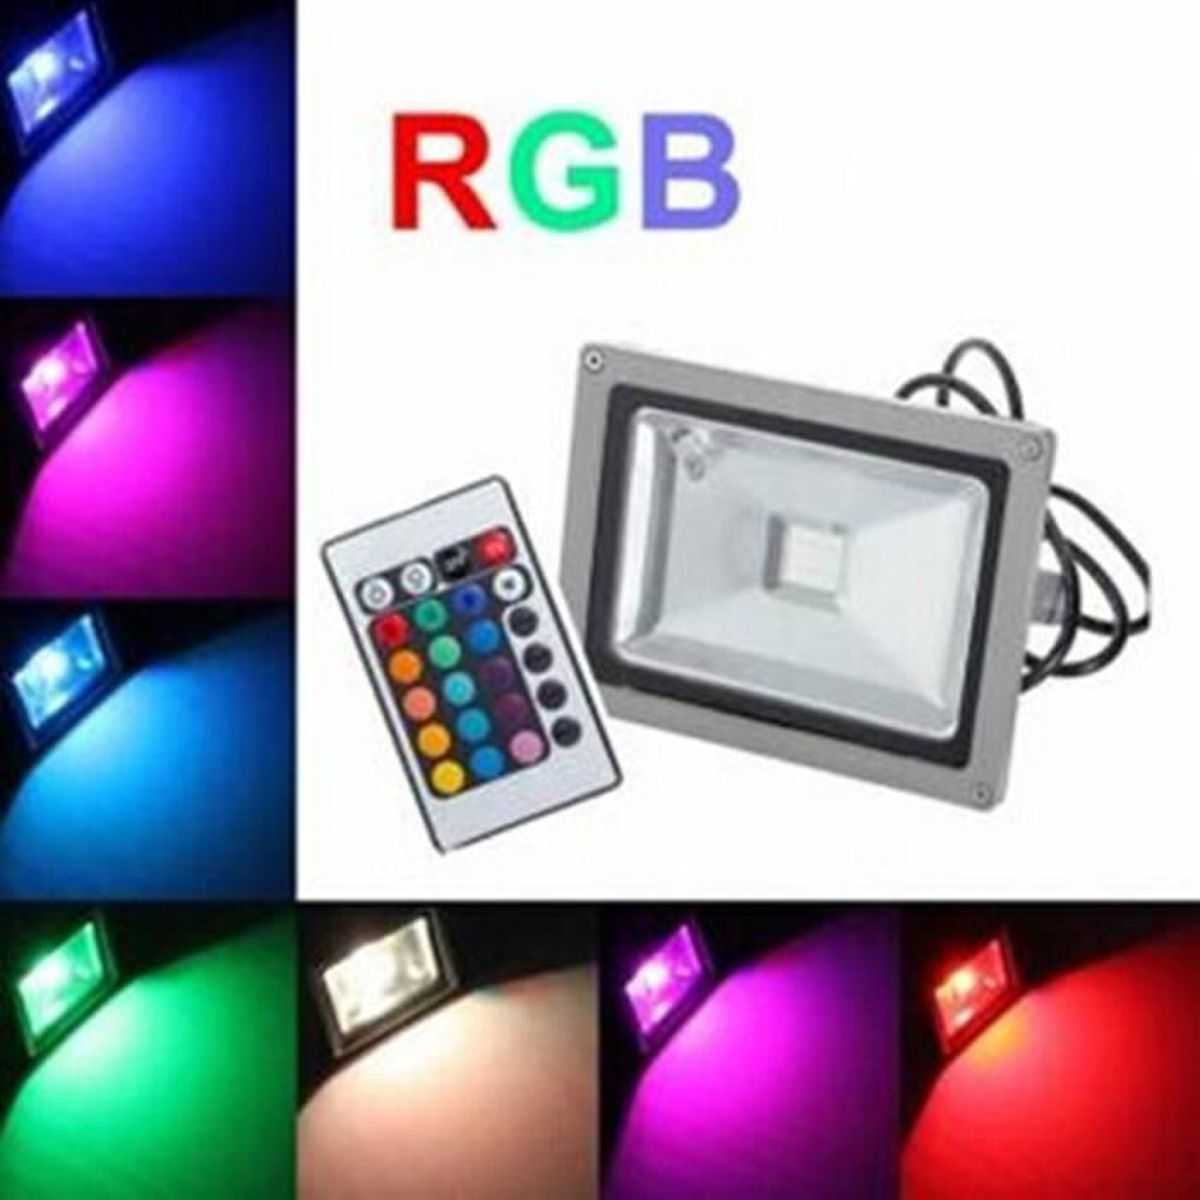 20w led projecteur rgb couleur exterieur ip65 etanche 220v jardin achat vente projecteur. Black Bedroom Furniture Sets. Home Design Ideas